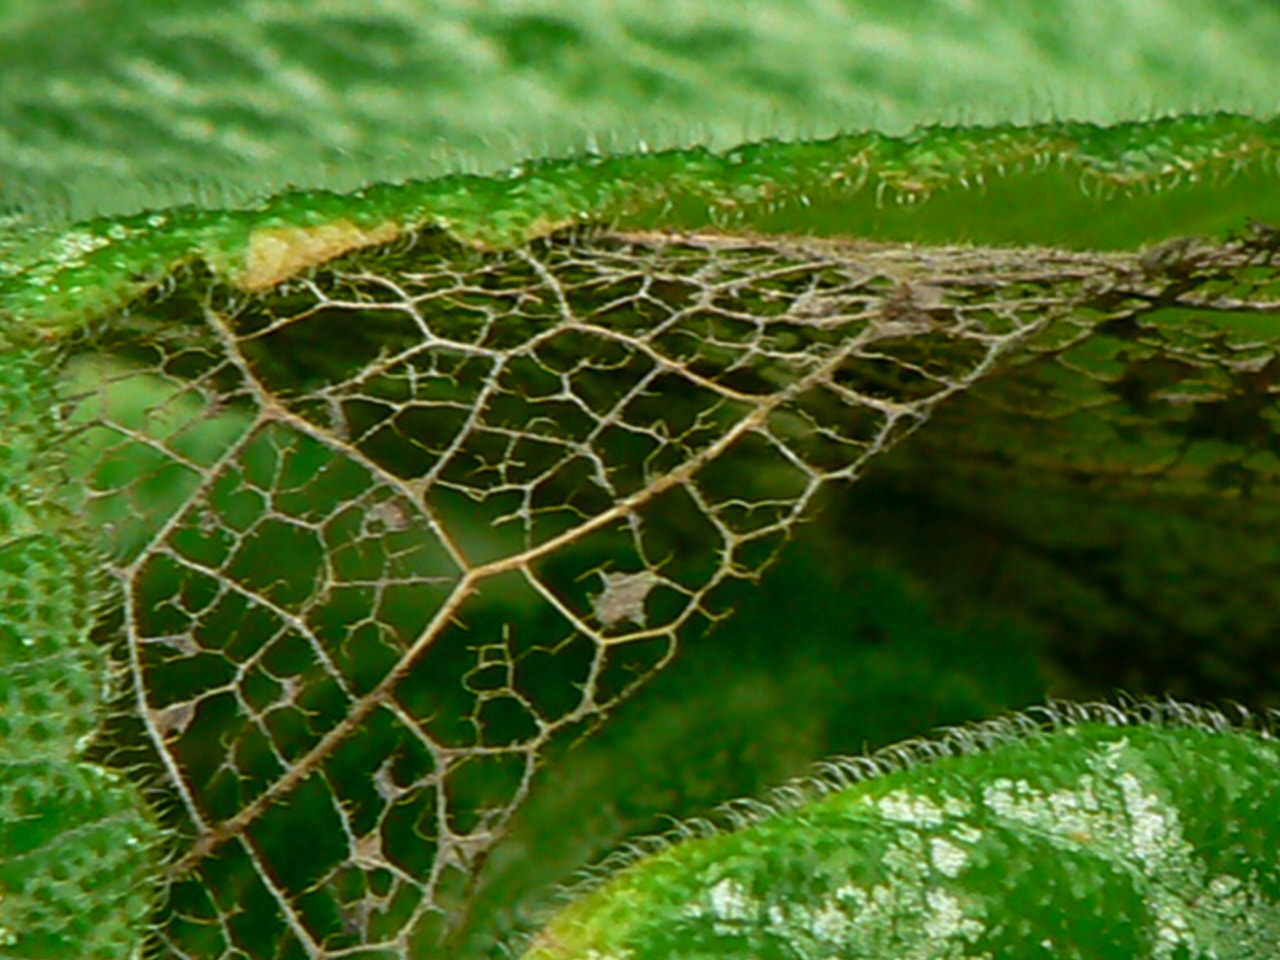 Photograph Green lace by Soňa Riegerová on 500px